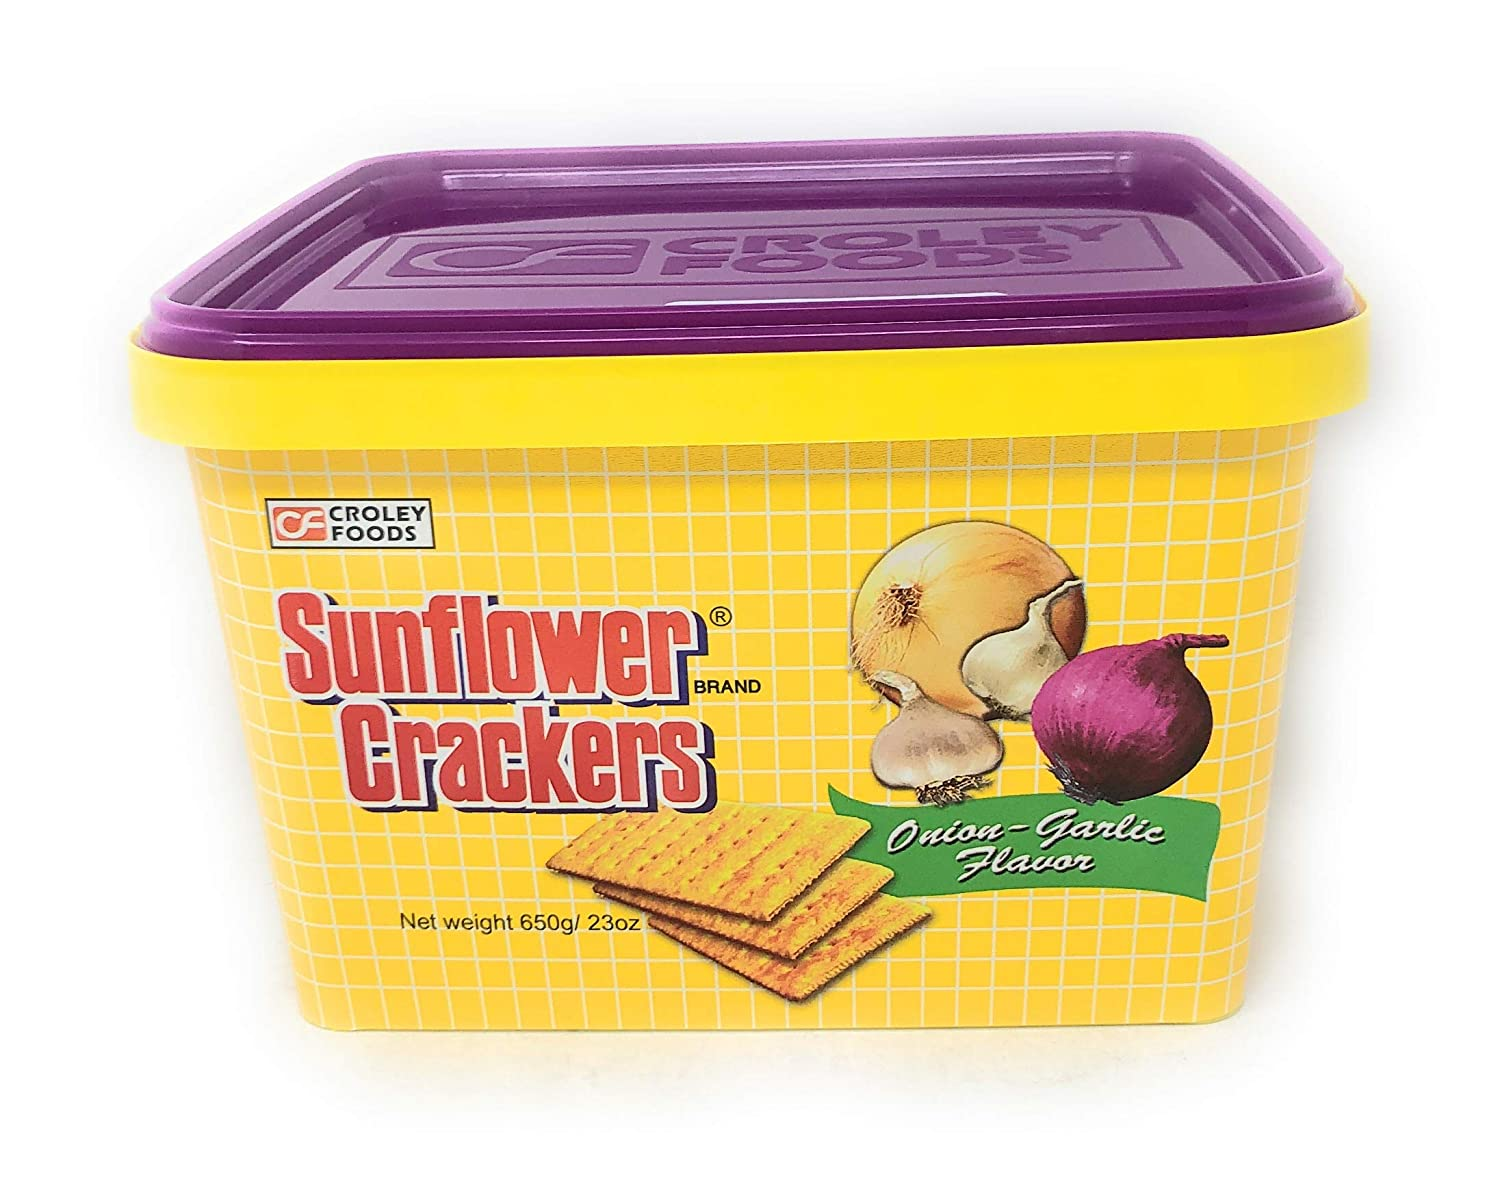 Dealing full price reduction Outlet ☆ Free Shipping Croley Foods Sunflower Crackers Onion-Garlic Cream Sandwh Flavor